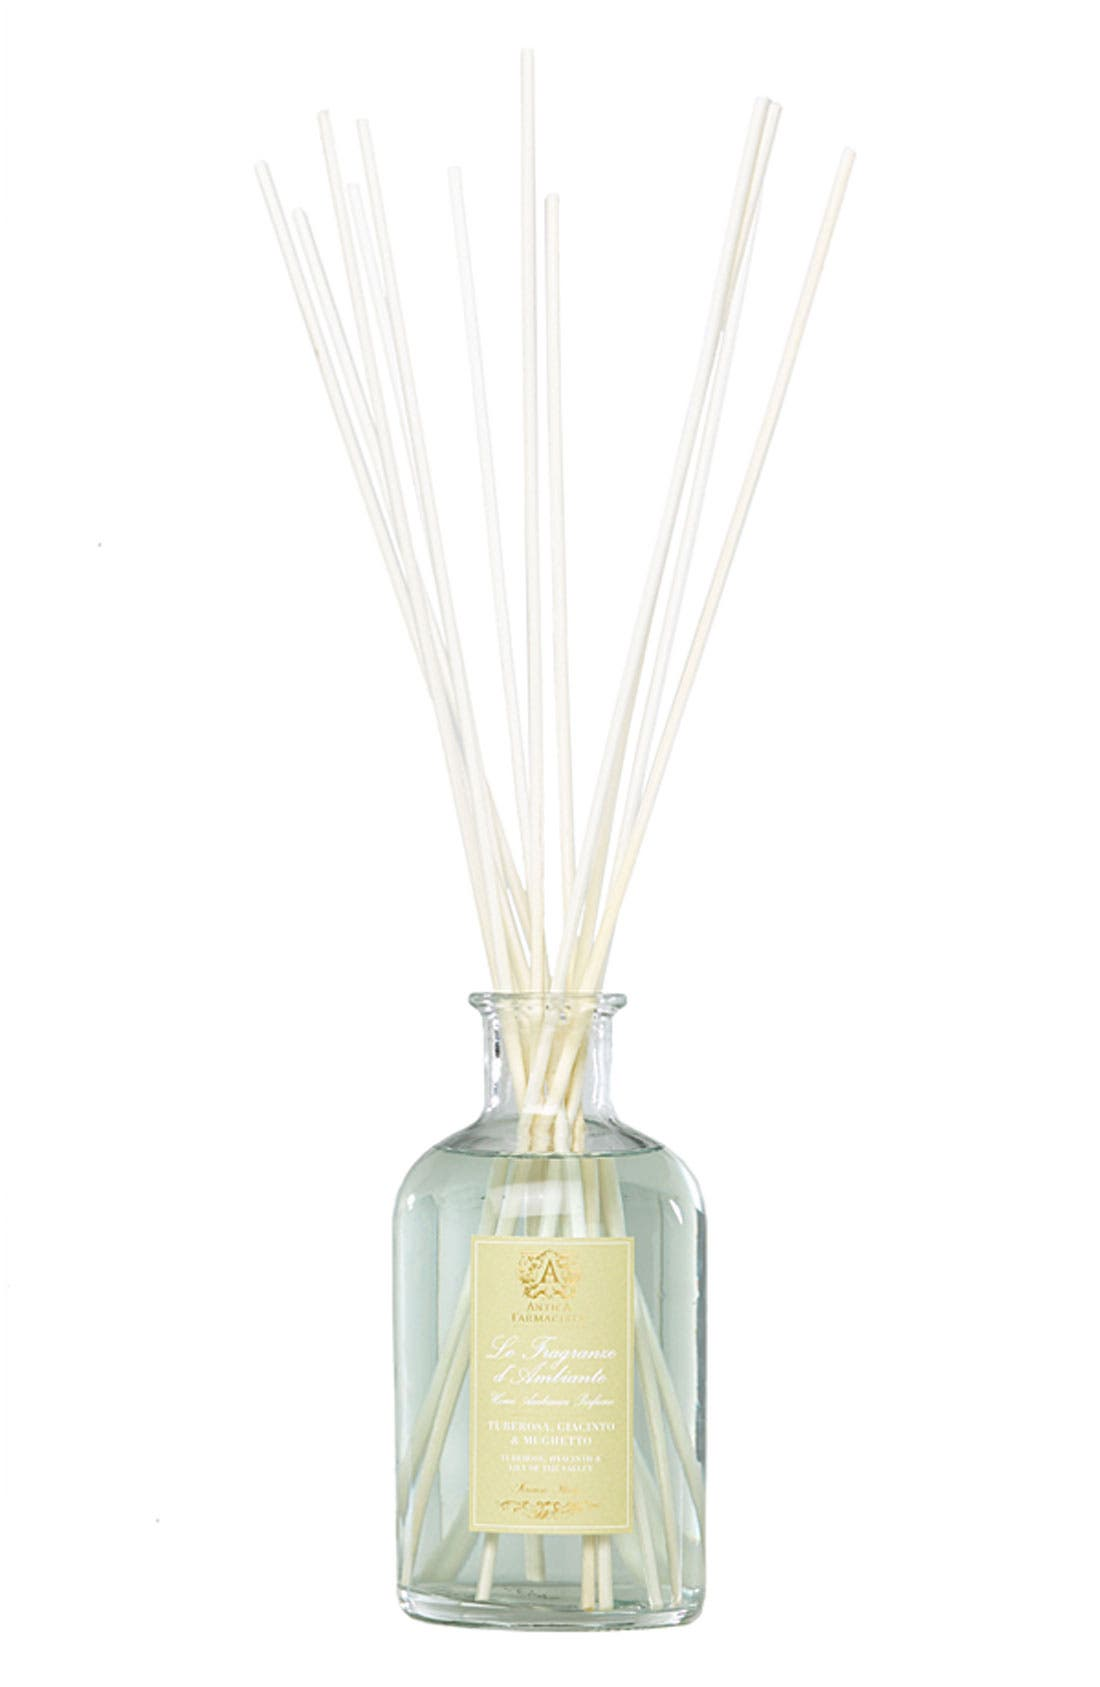 Alternate Image 1 Selected - Antica Farmacista 'Tuberose, Hyacinth & Lily of the Valley' Home Ambiance Perfume